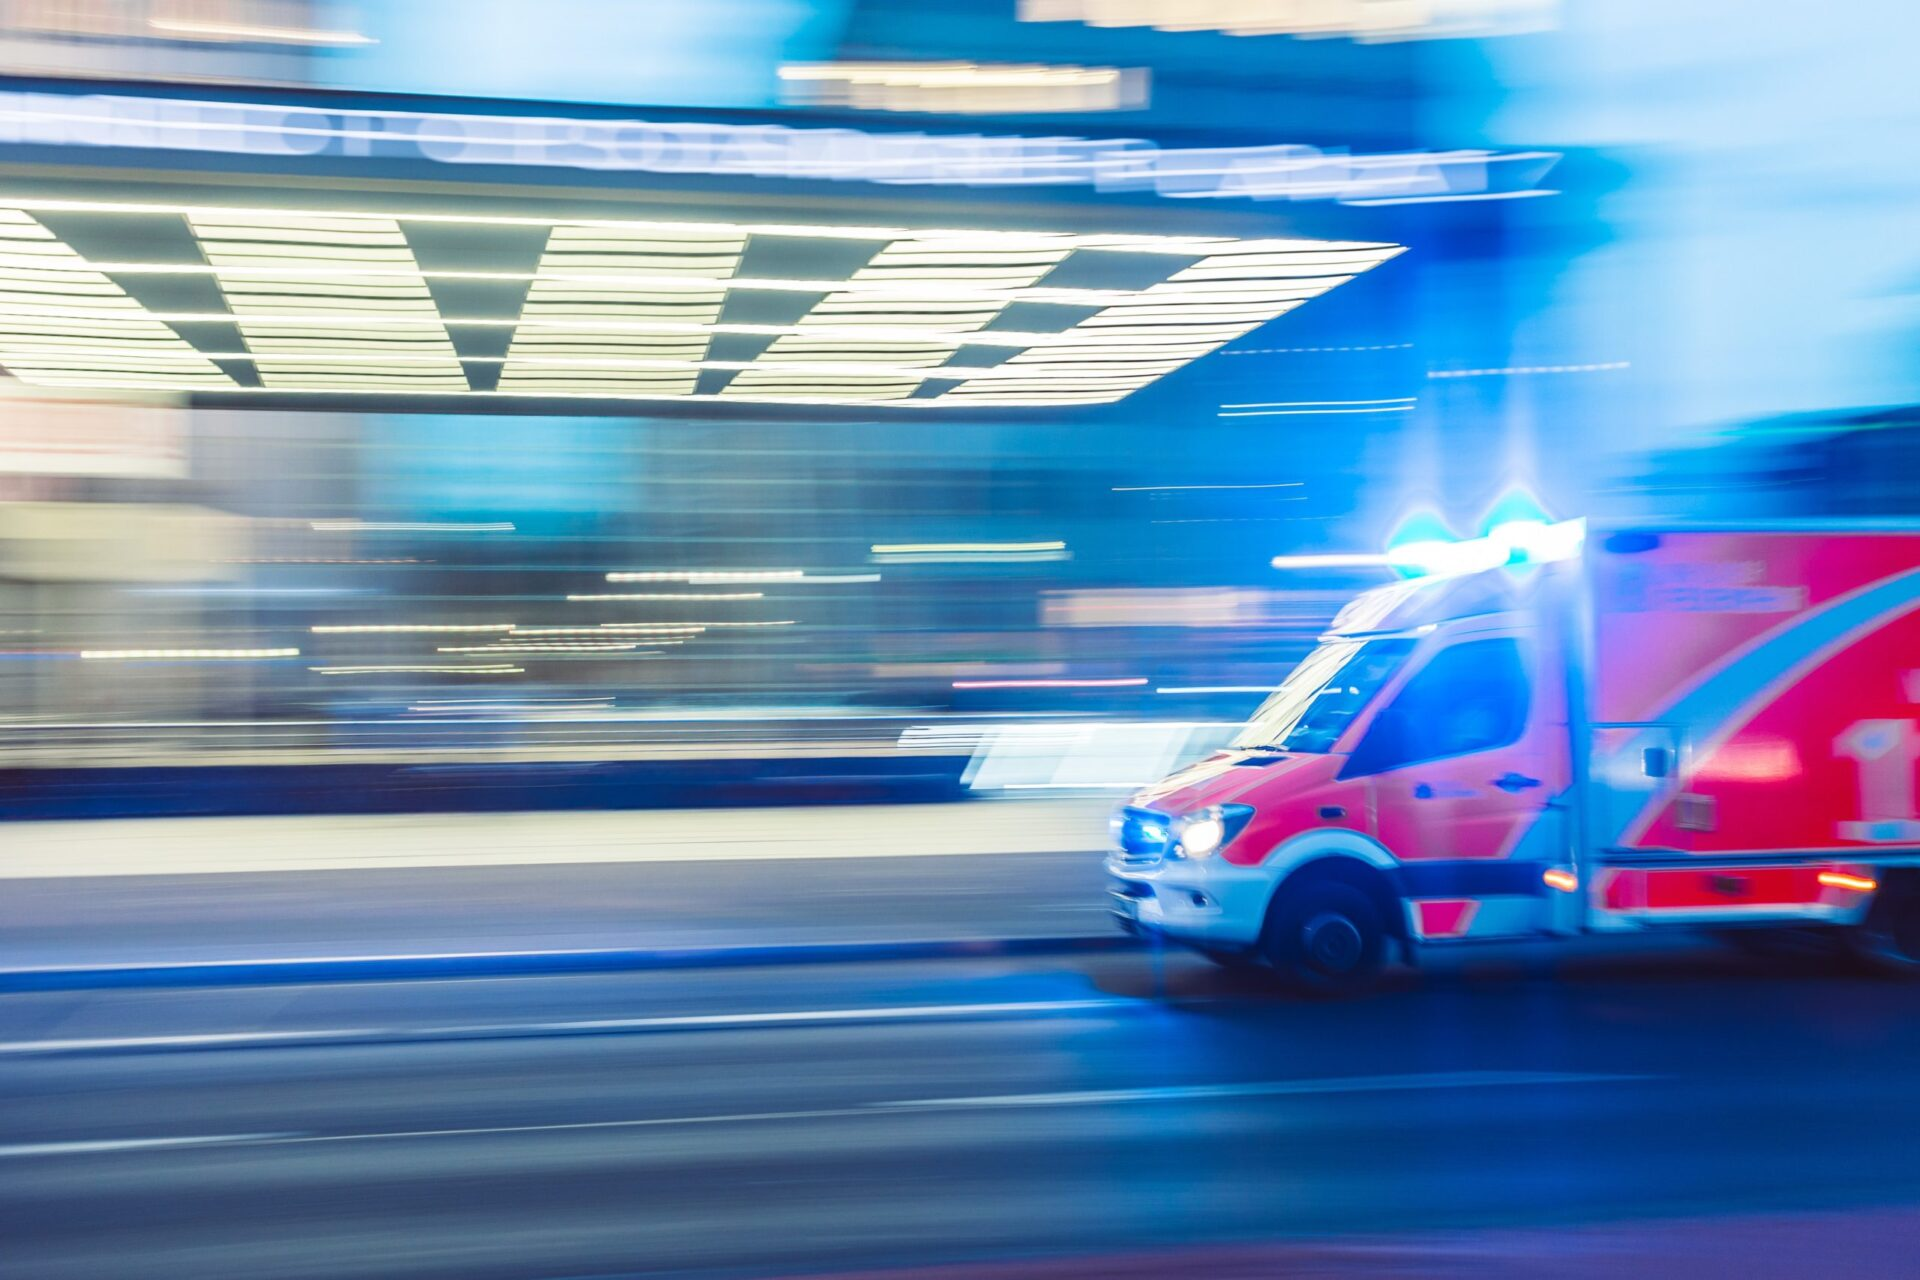 ambulance races critically ill patient